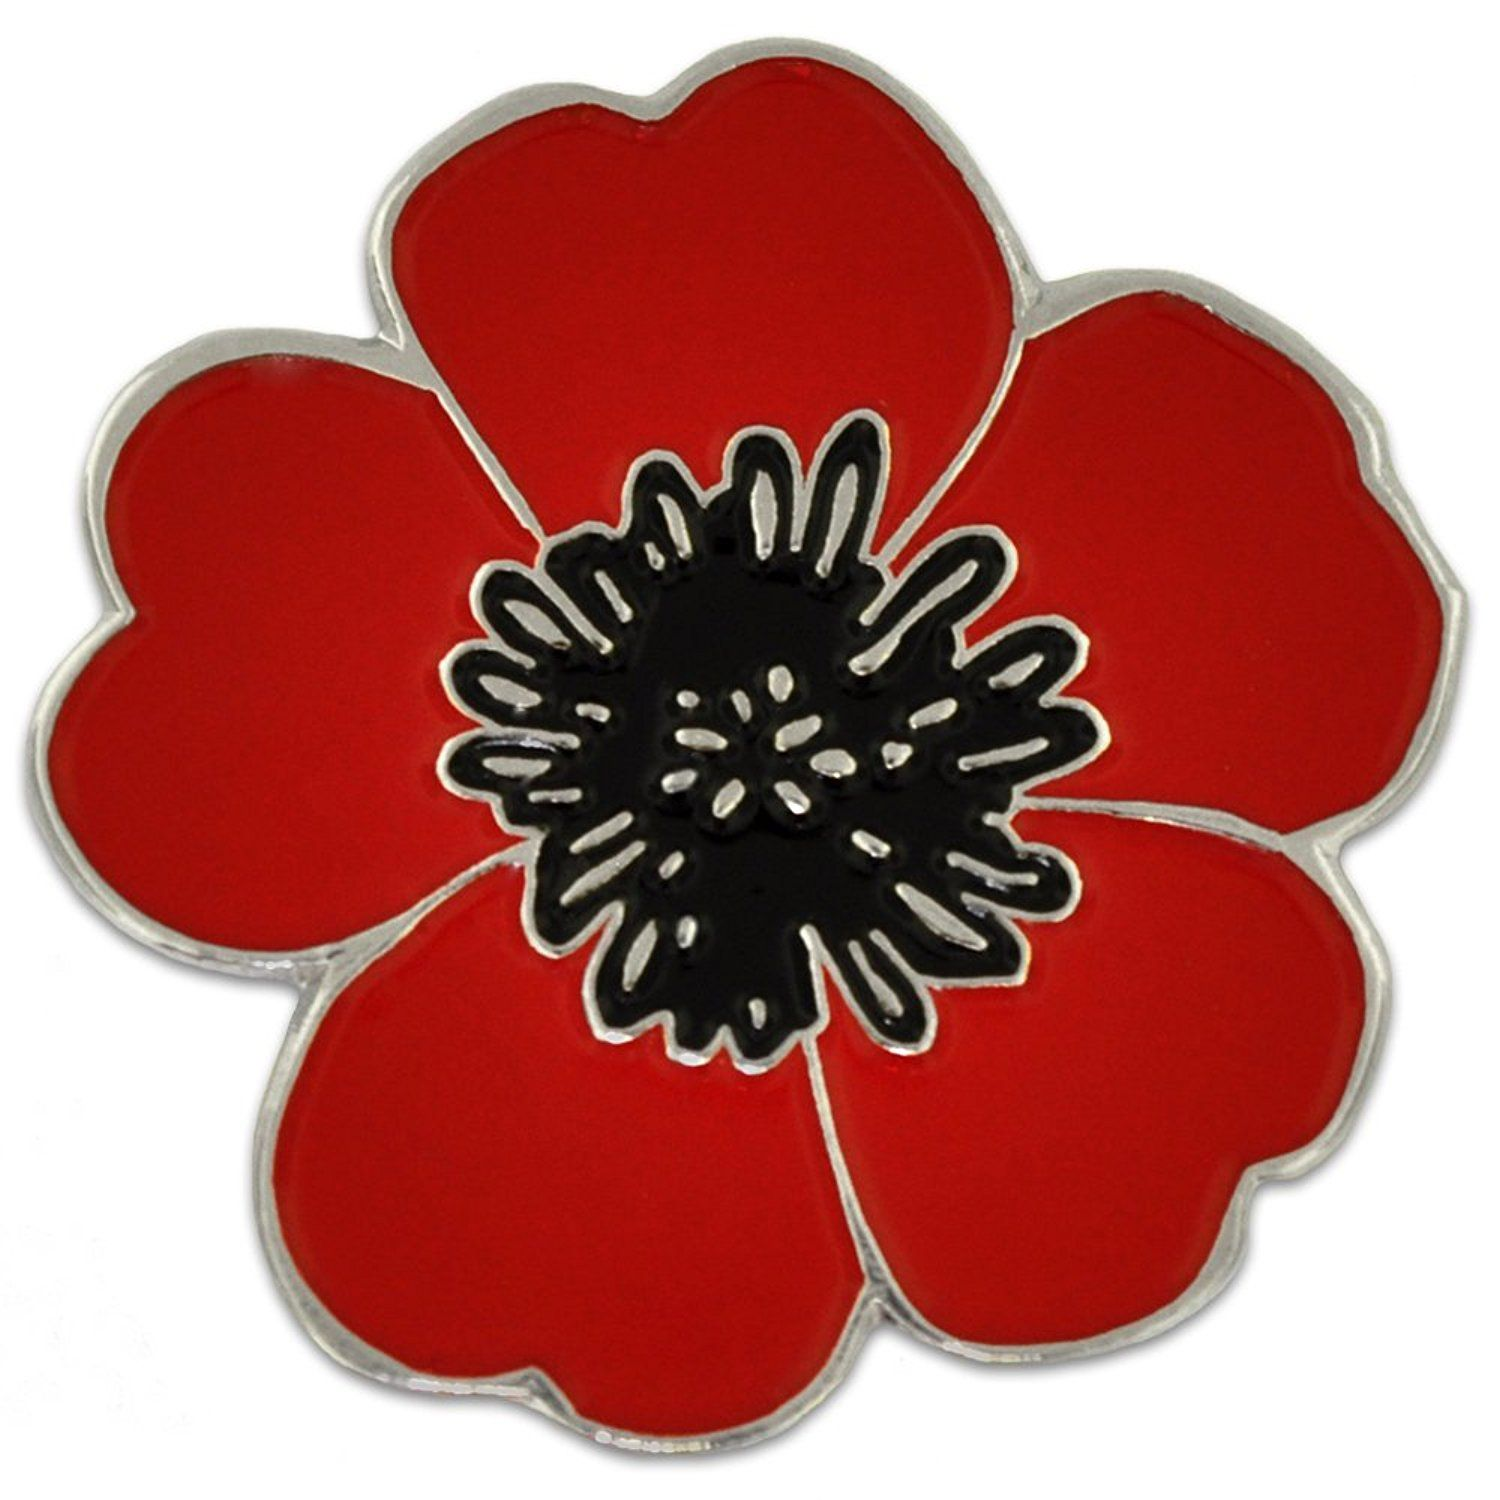 Pinmarts Red And Black Poppy Flower Remembrance Memorial Day Enamel